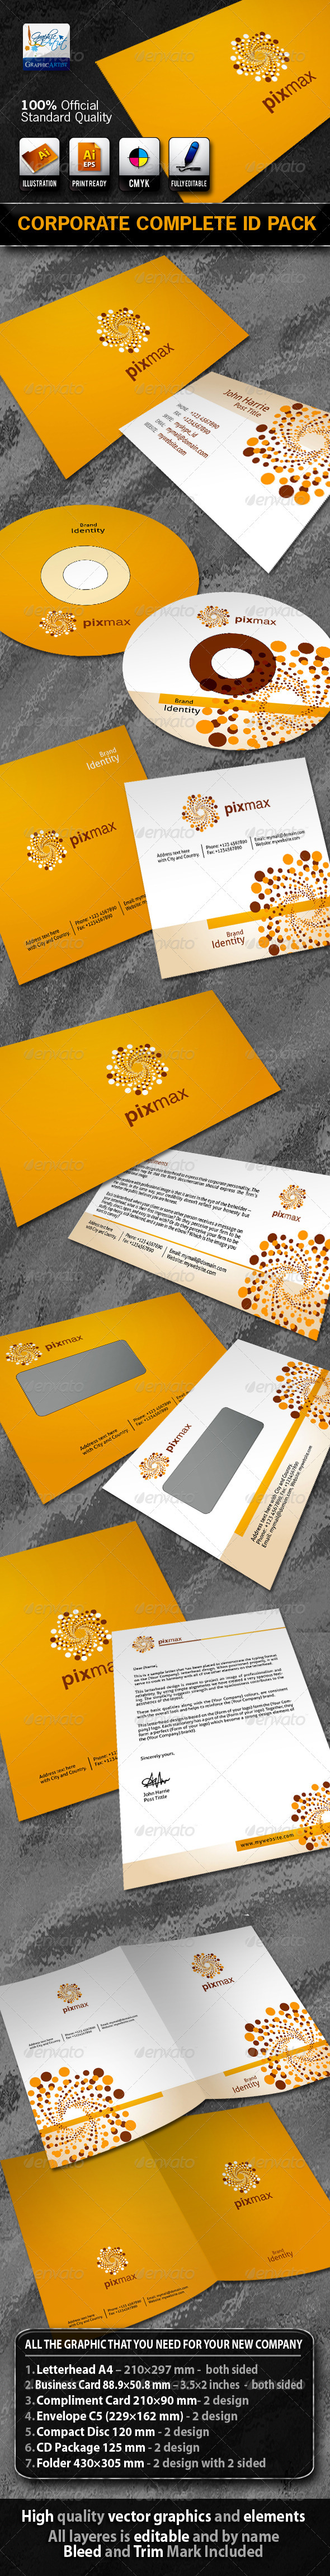 Graphic River PixMax Business Corporate ID Pack With Logo Print Templates -  Stationery 721922